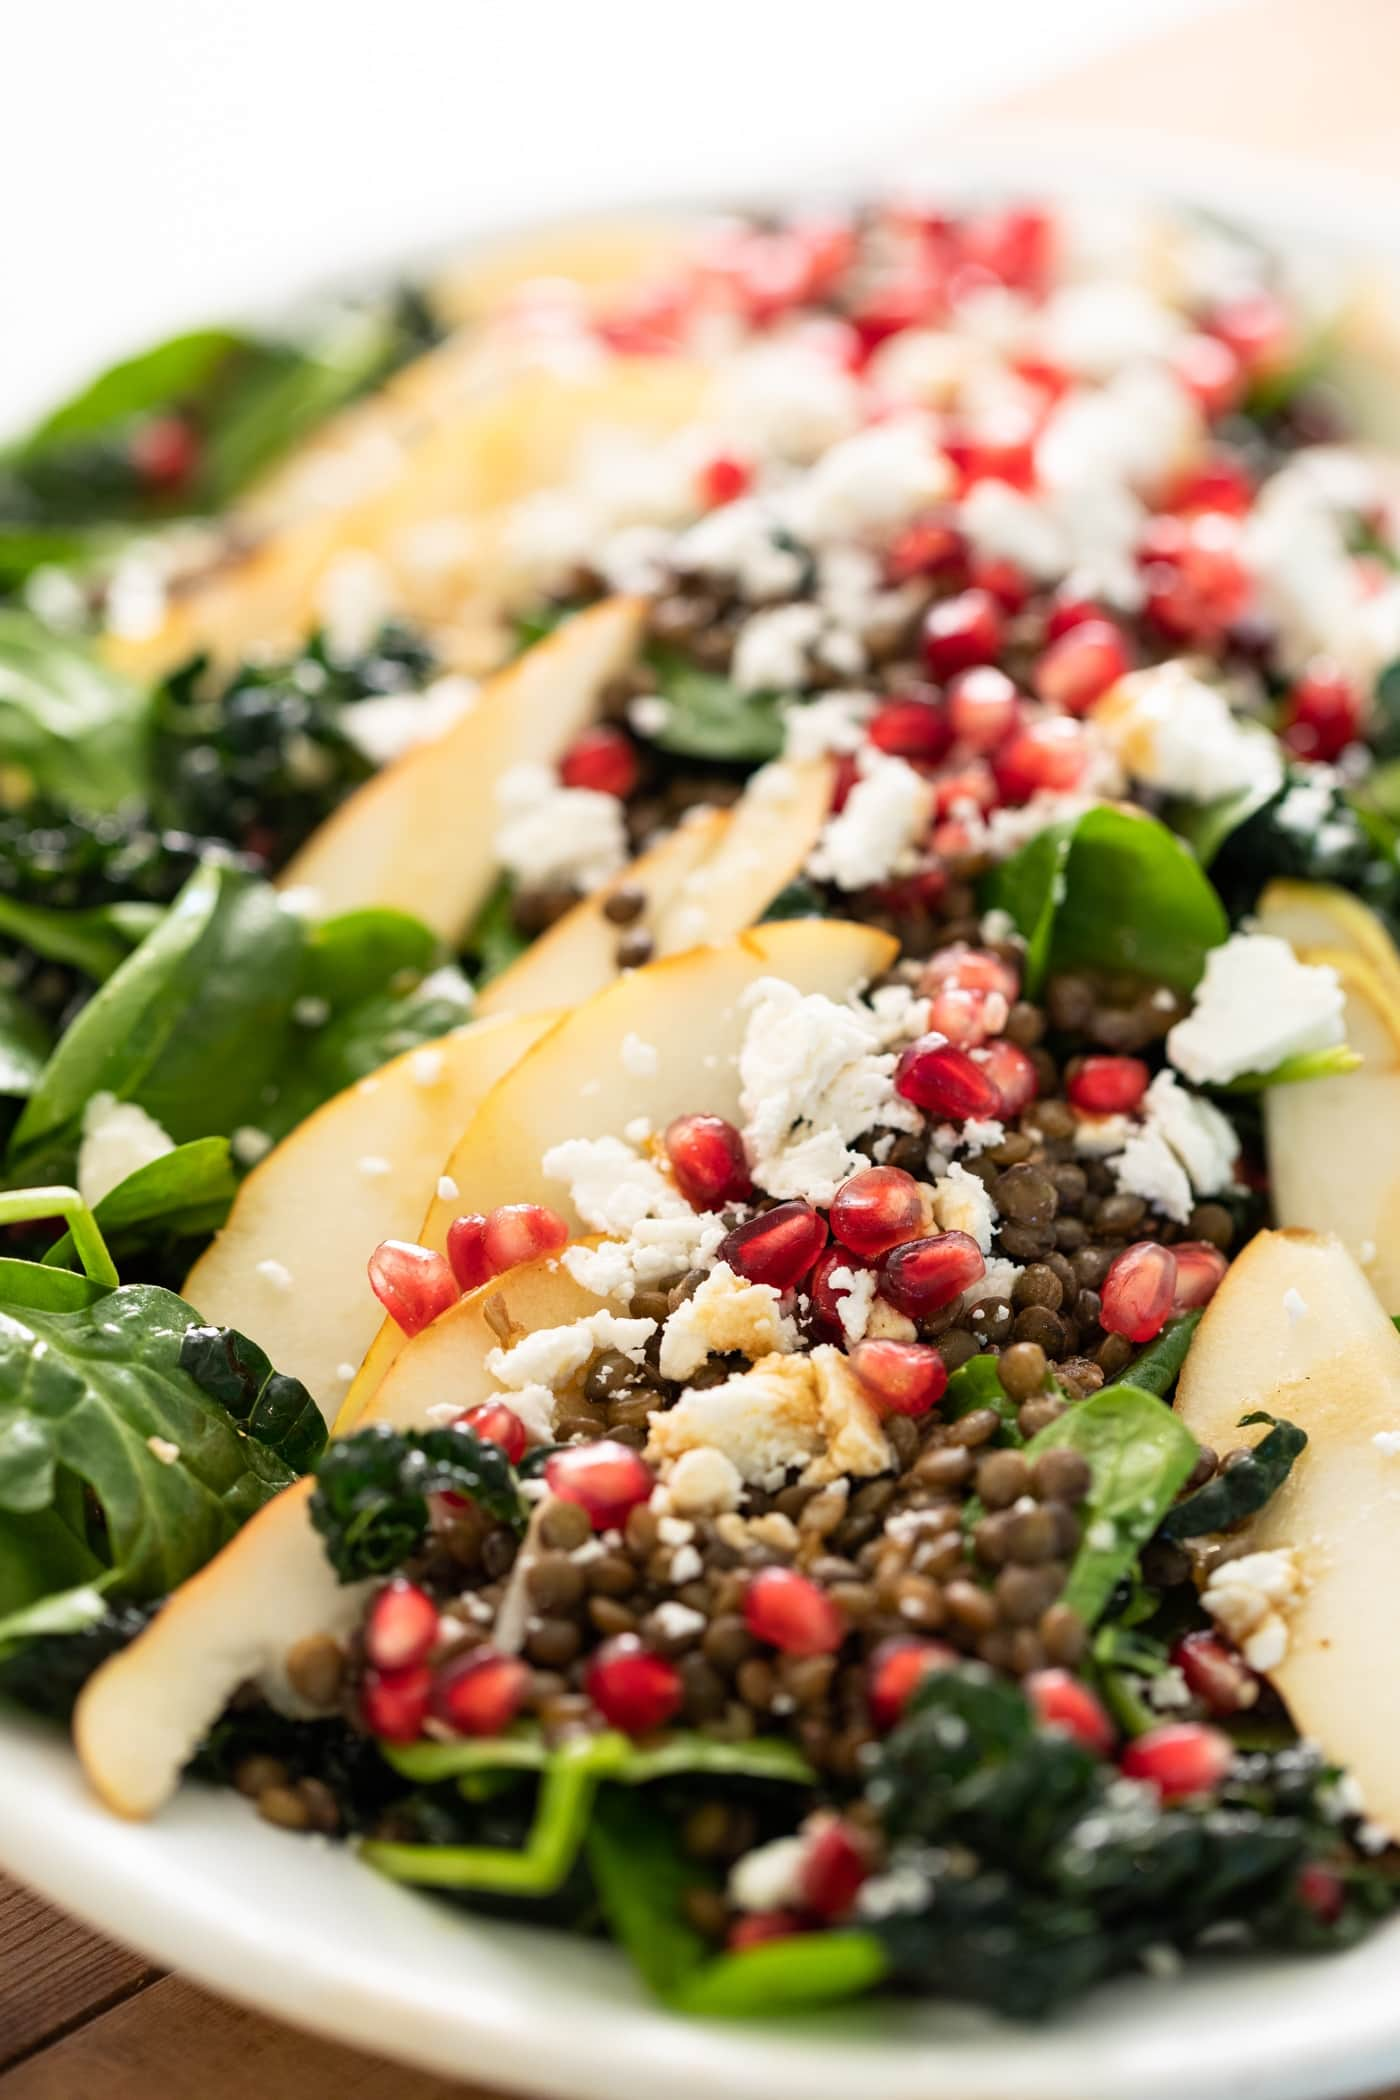 Close view of big slices of pear laying on top of green kale and spinach and topped with pomegranate seeds and white crumbles of feta cheese